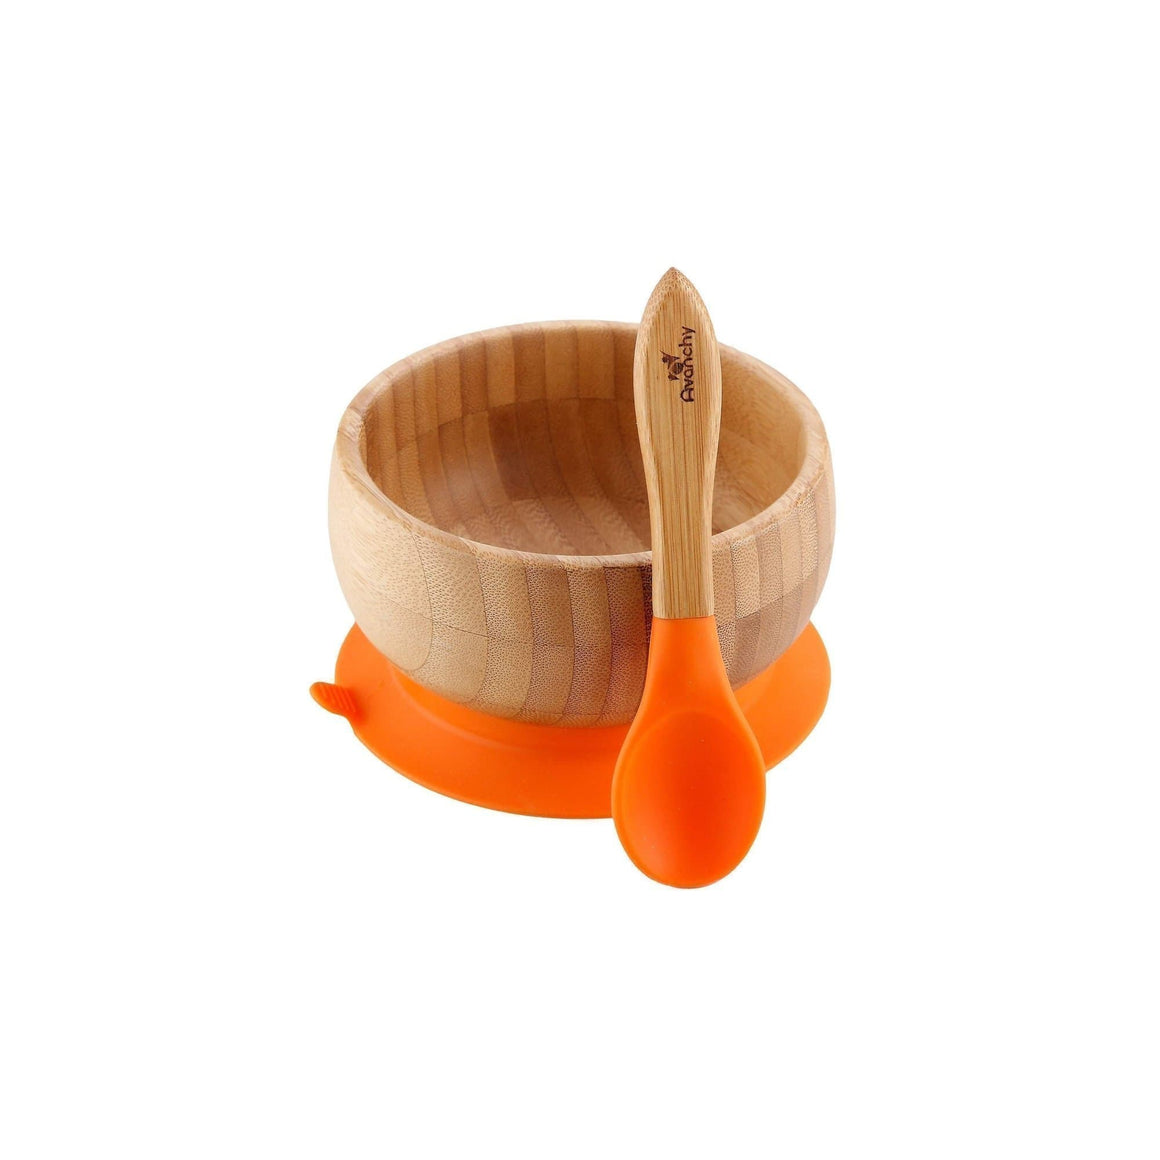 Avanchy Bamboo Stay Put Suction Baby Bowl + Spoon - Orange (兒童有機竹碗套裝-橙色)